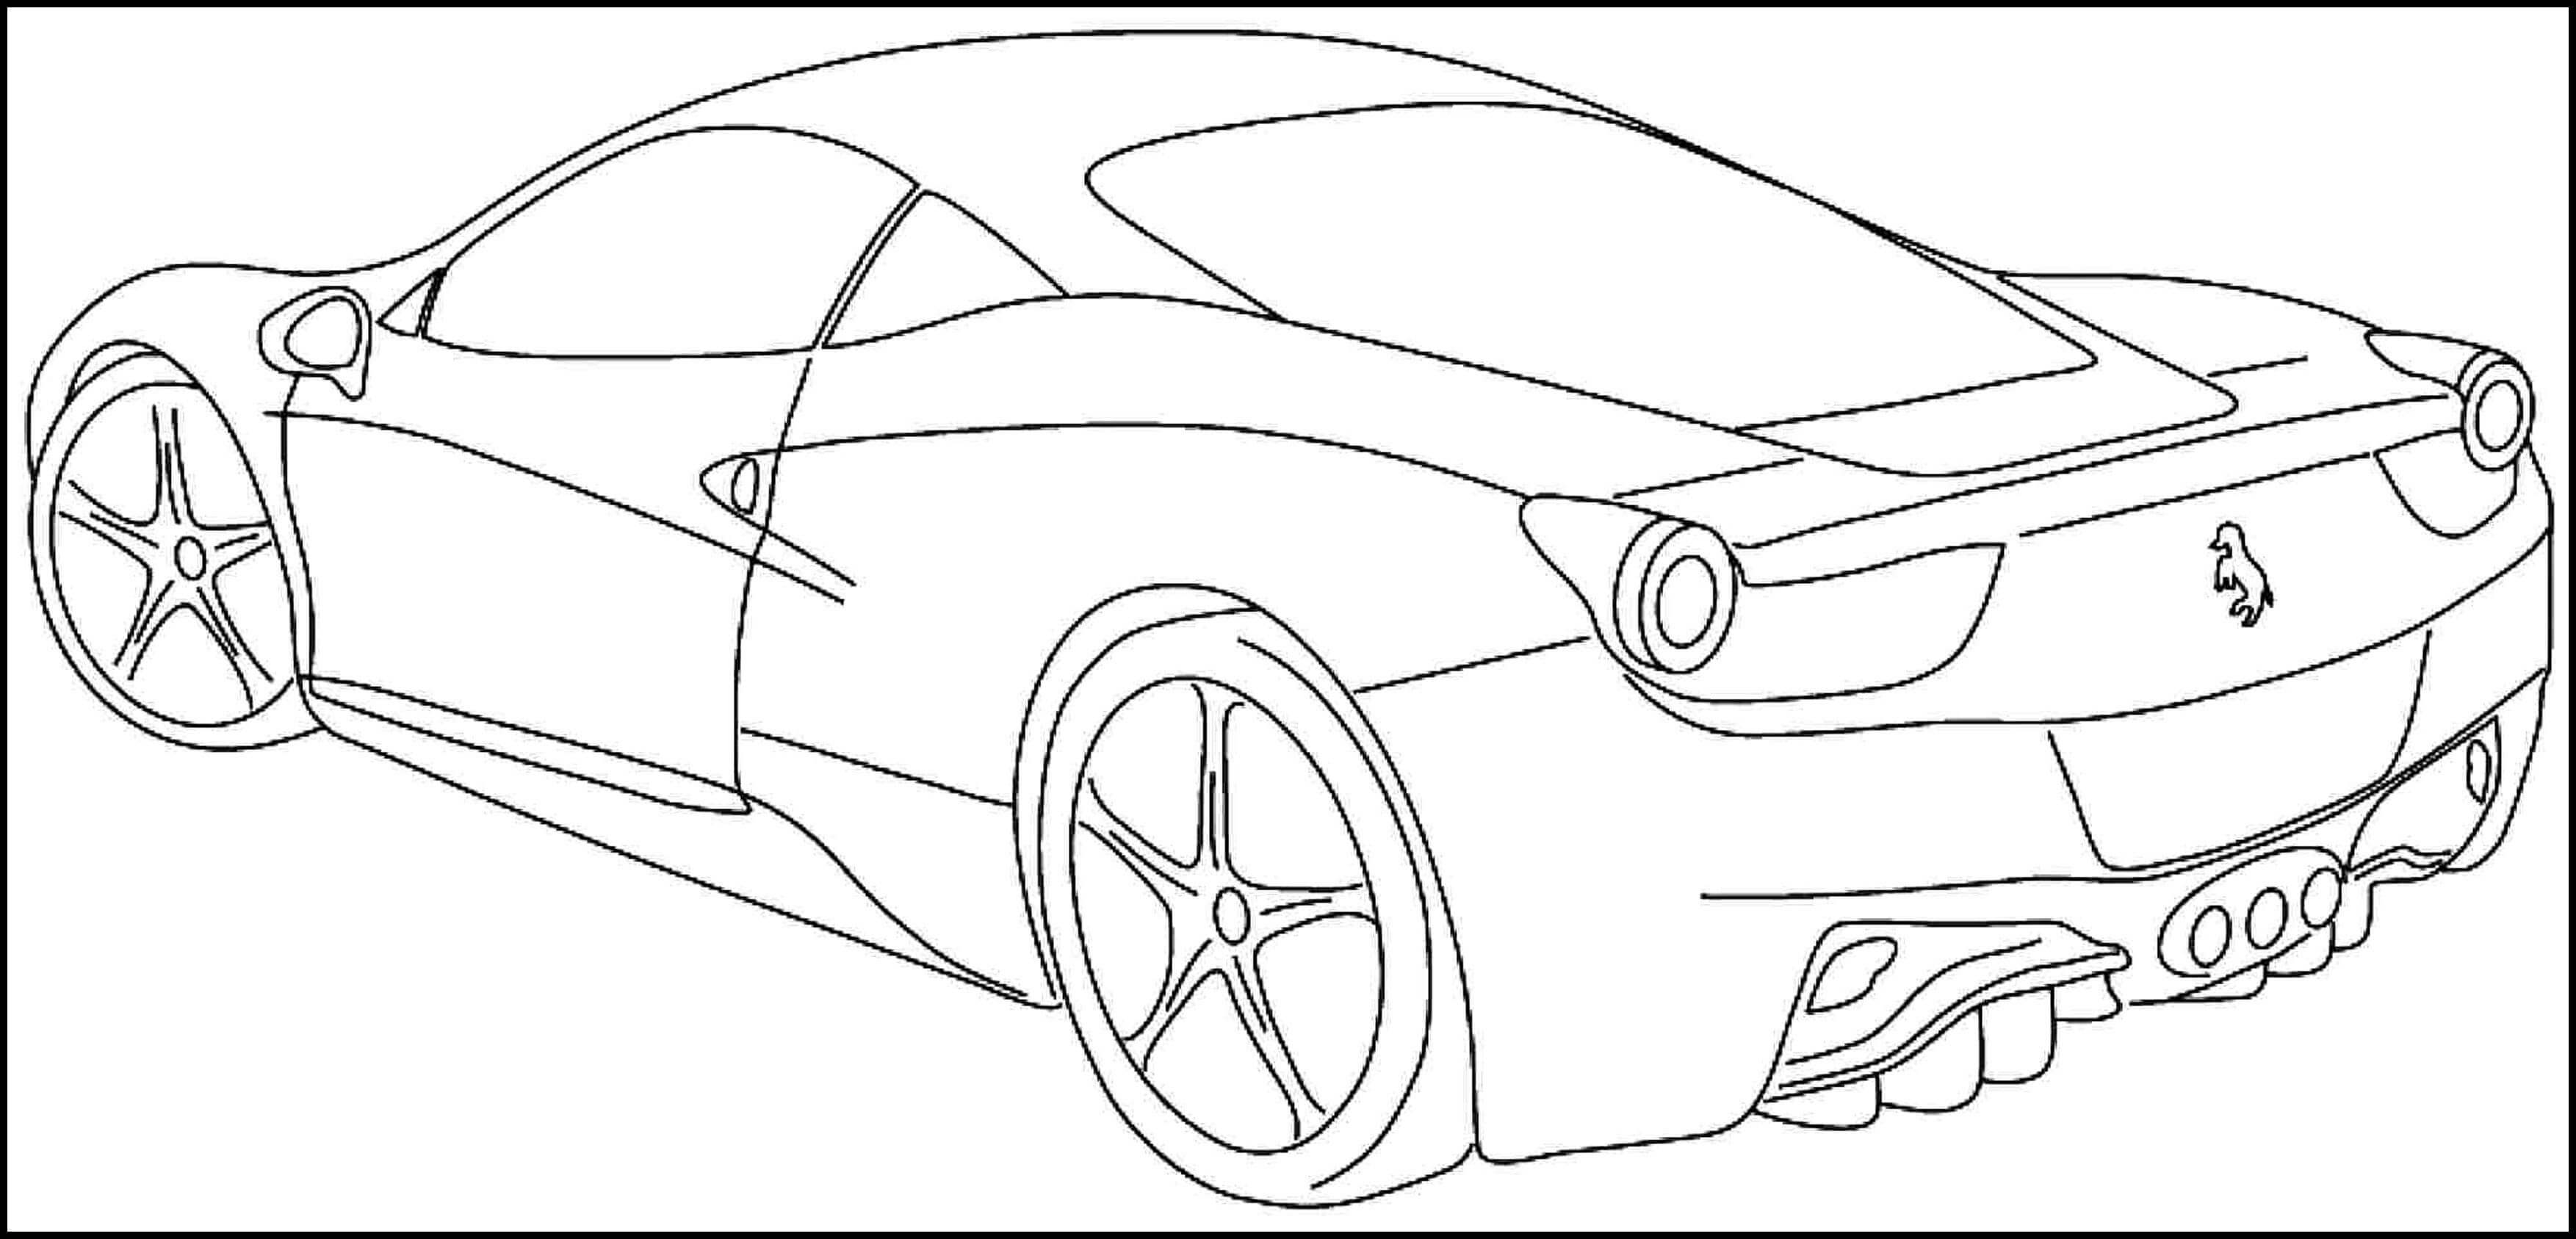 3507x1687 Printable Sports Car Coloring Pages For Kids Amp Teens. Download